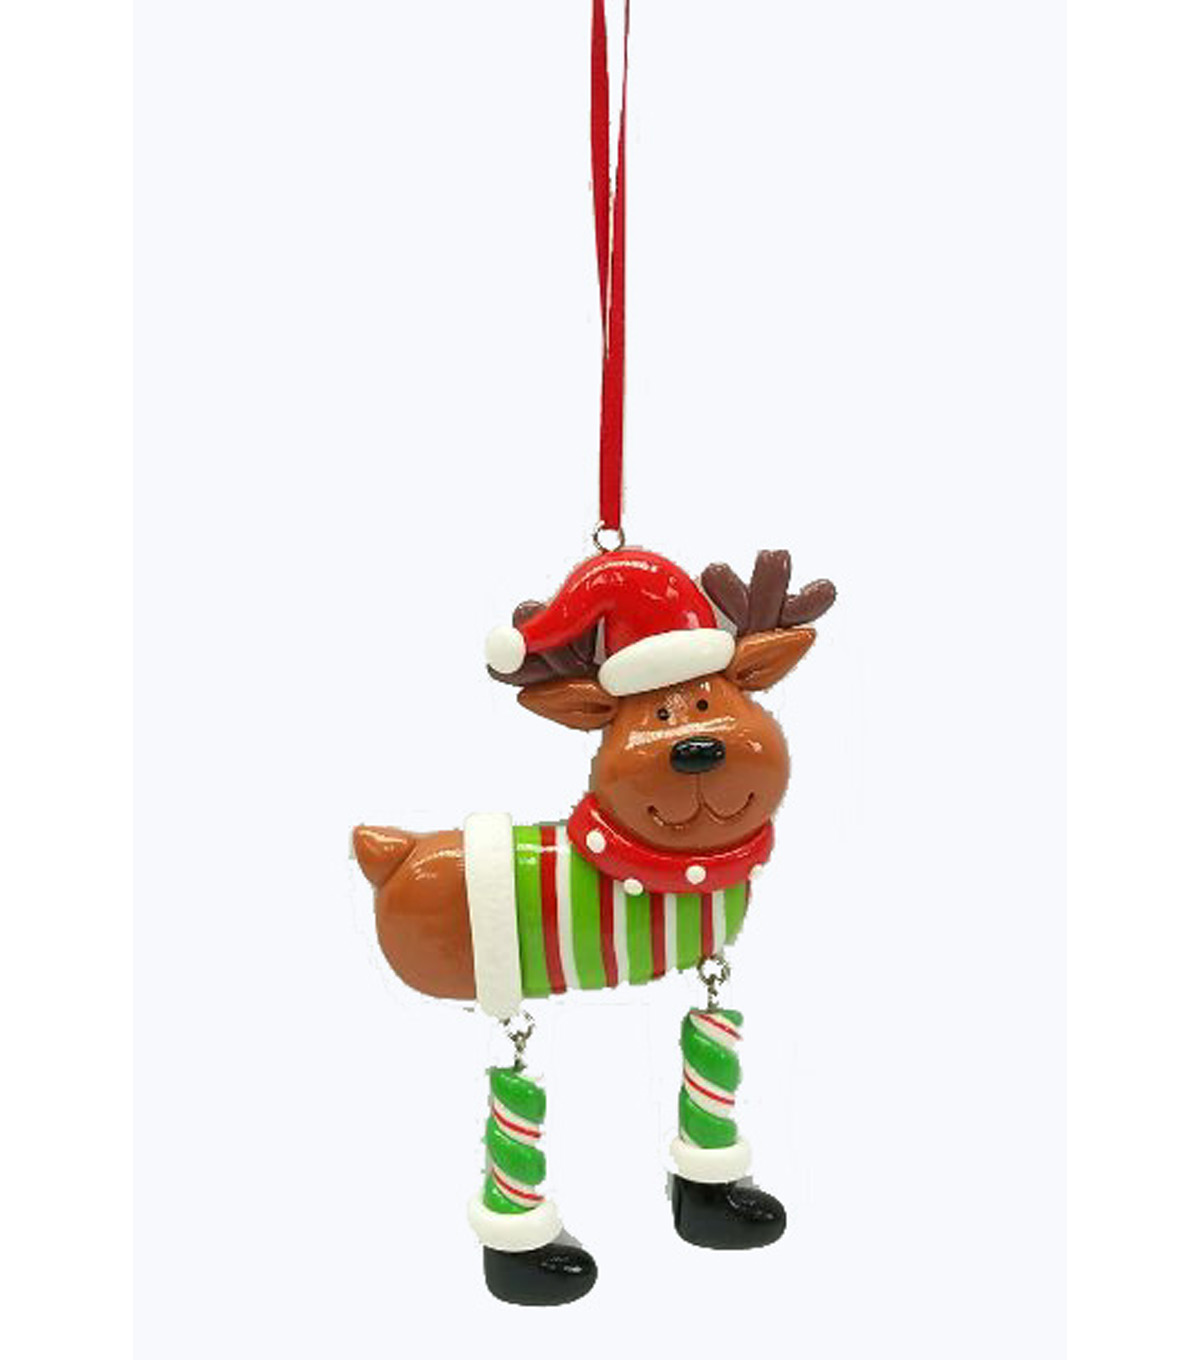 Maker\u0027s Holiday Whimsy Workshop Reindeer with Dangling Legs Ornament